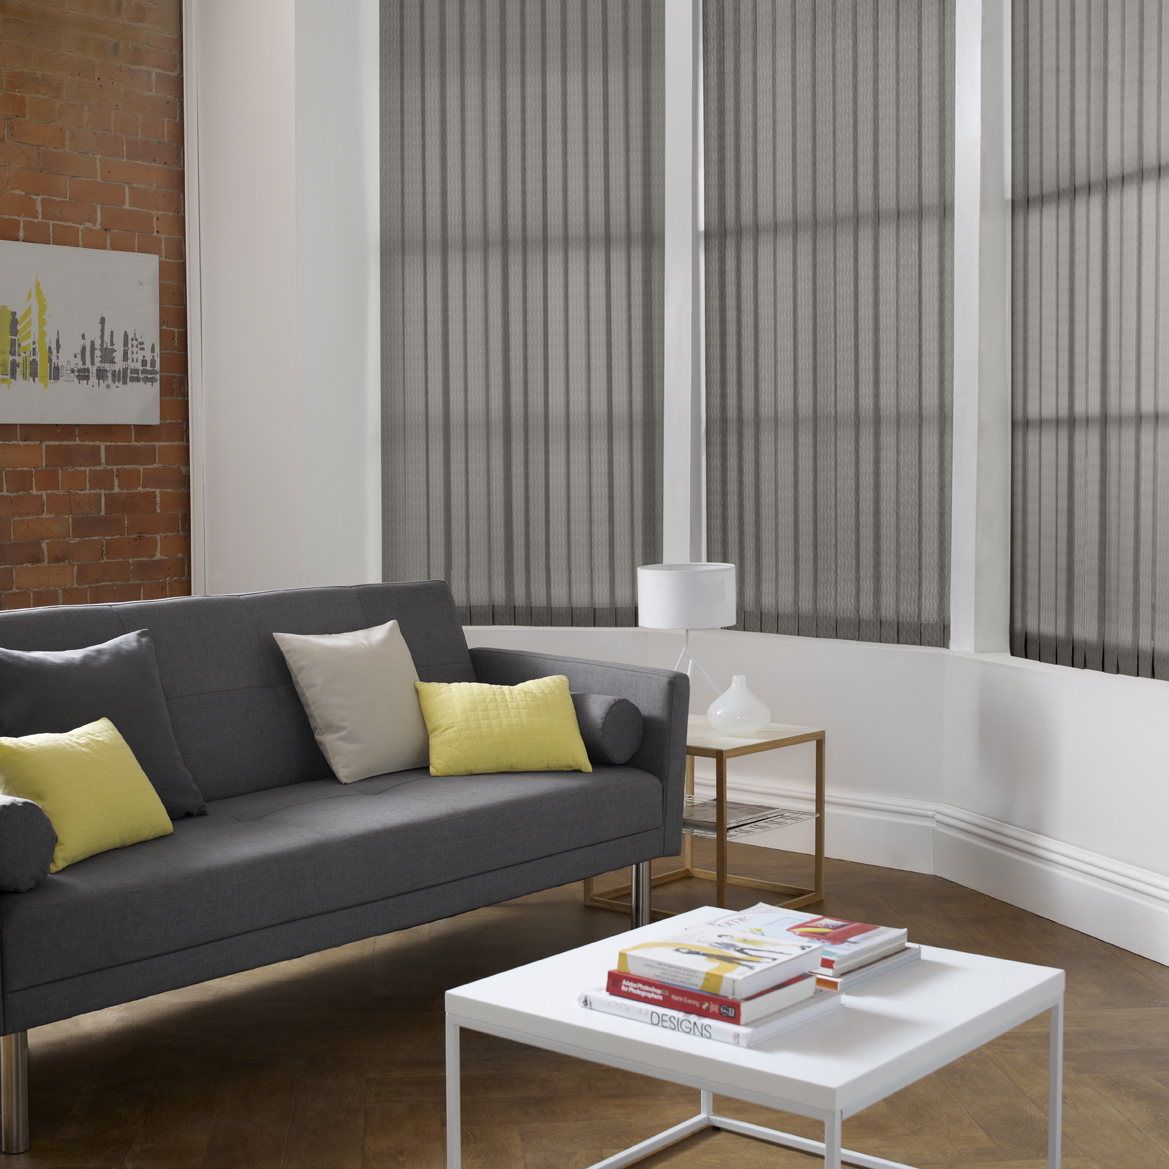 Vertical DQ Vector Concrete Living Room <div style='clear:both;width:100%;height:0px;'></div><span class='cat'>Vertical Blinds, Blinds</span>